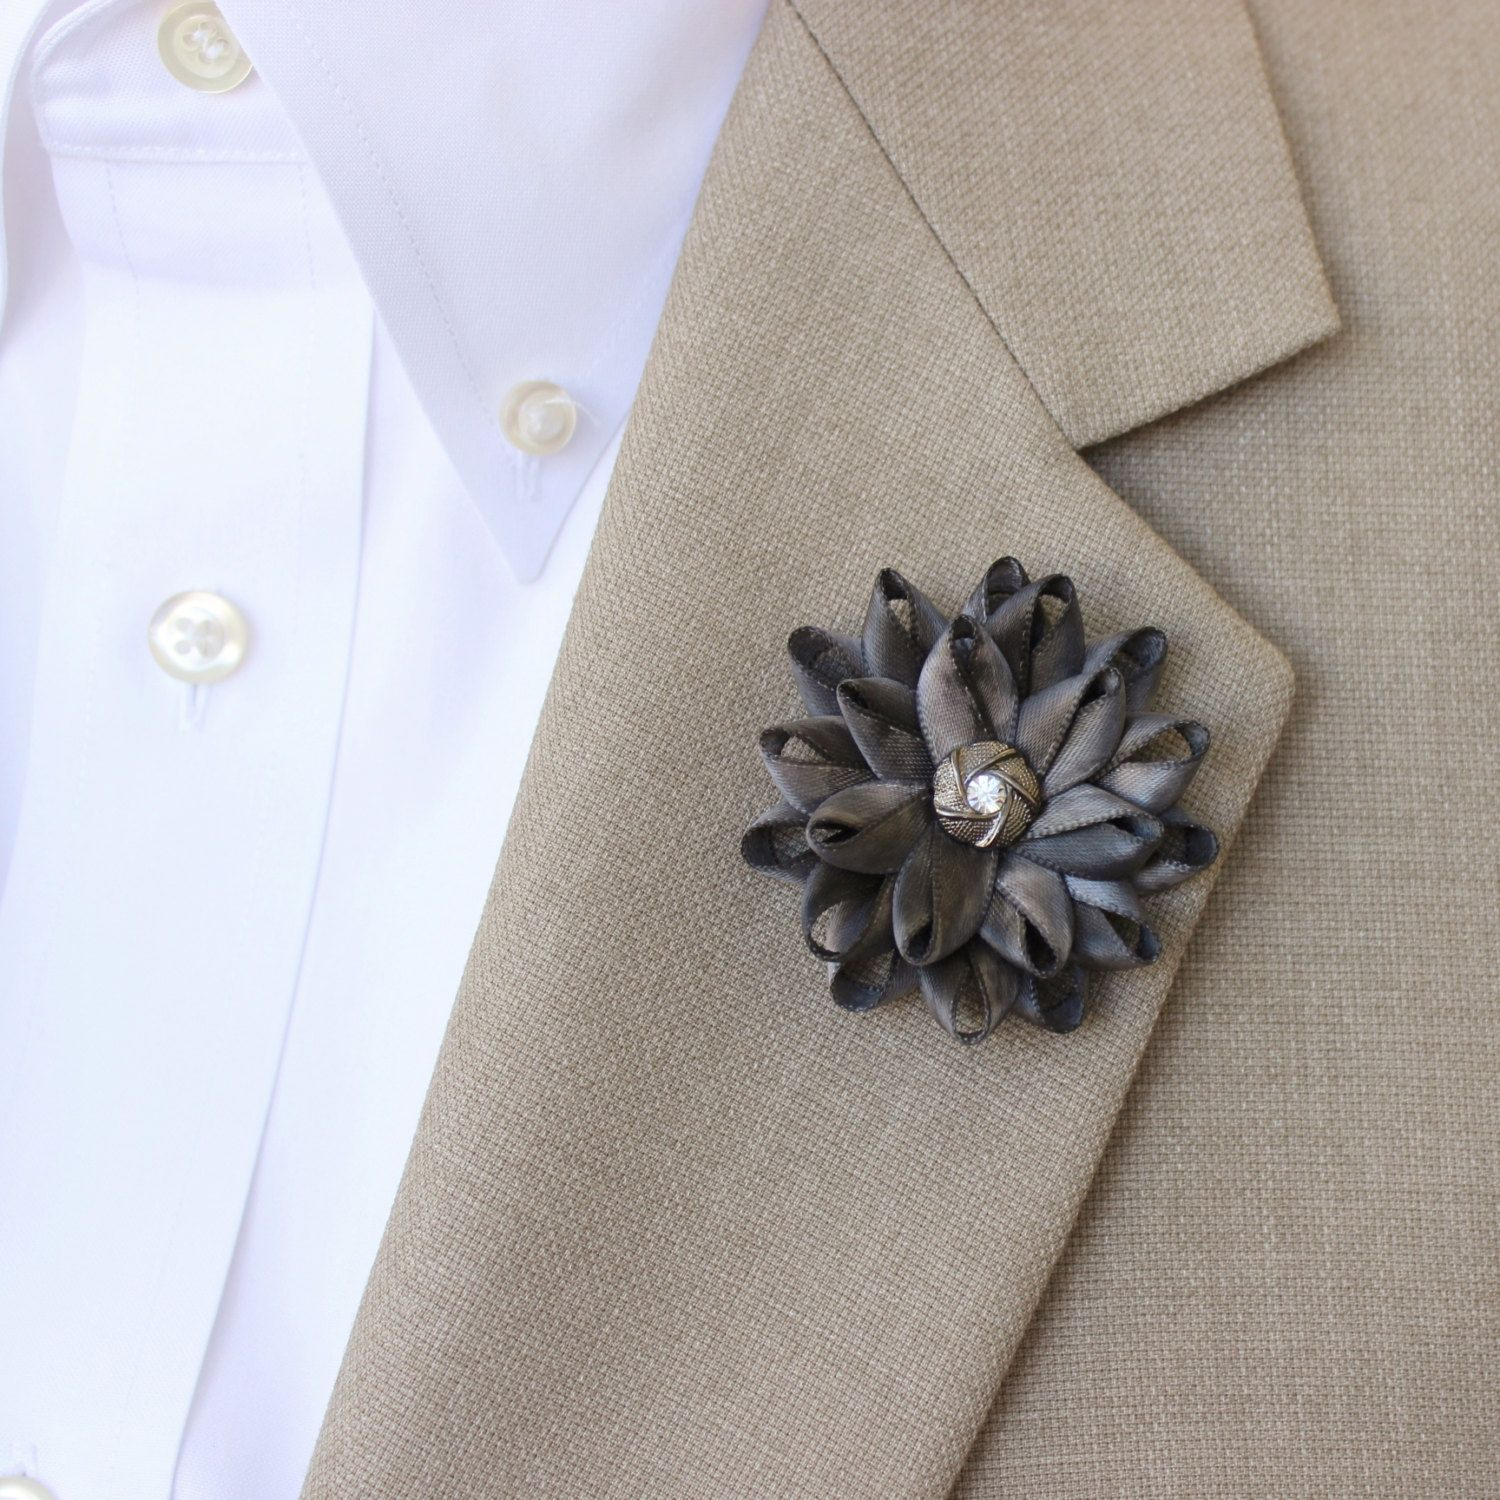 Mens Flower Lapel Pin Gray Lapel Flower for Men Mens Lapel Flower Dark Gray Boutonniere Gifts for Men Men's Lapel Pin Lapel Flower Pin